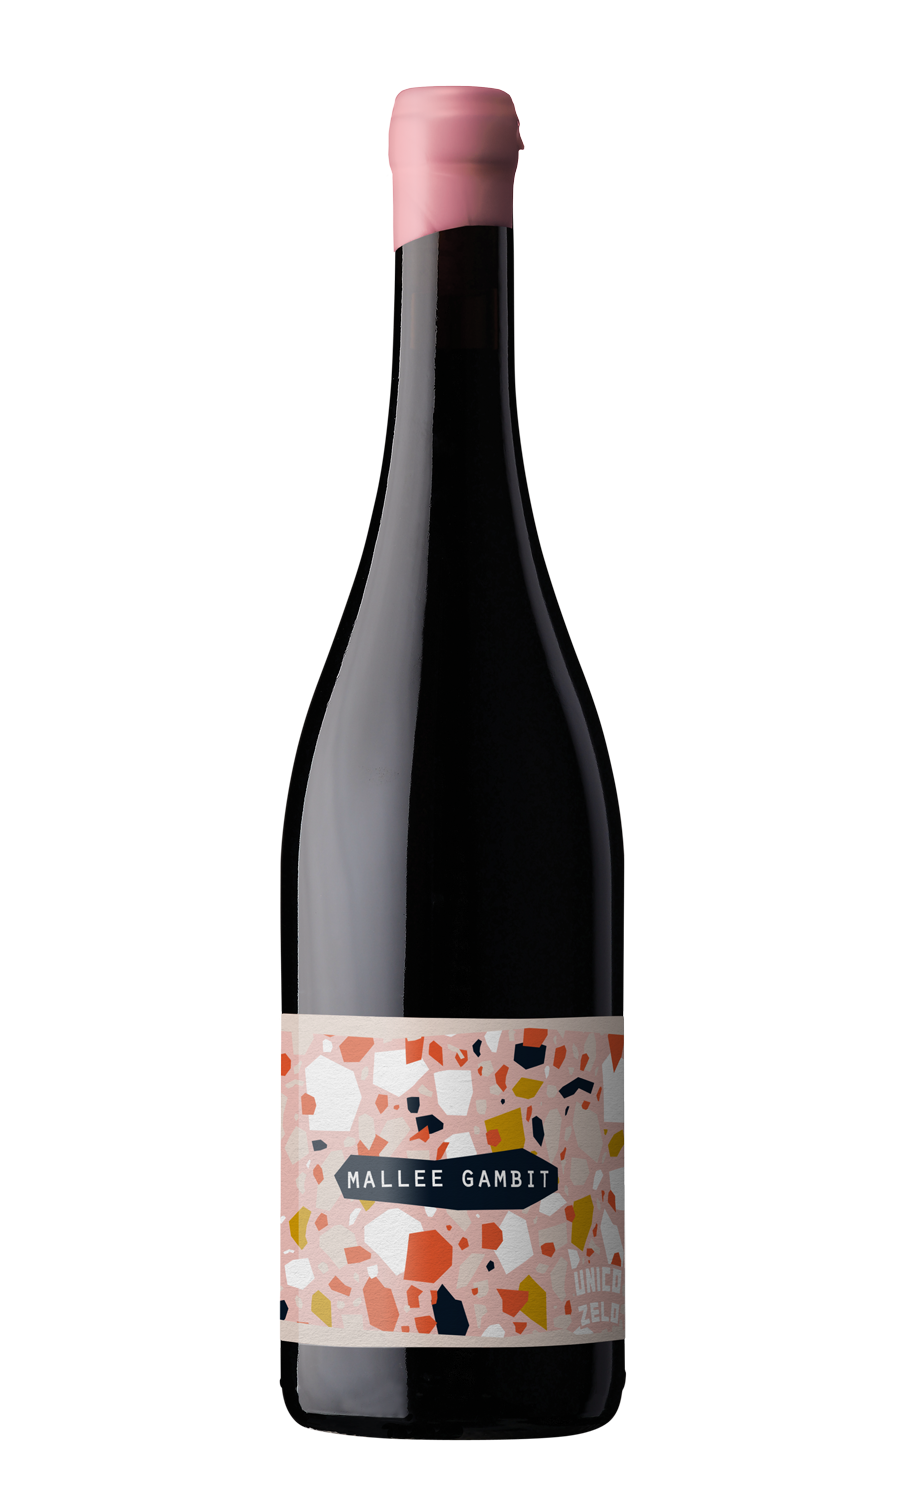 Unico-Zelo-Mallee-Gambit-Wine-Label-Design